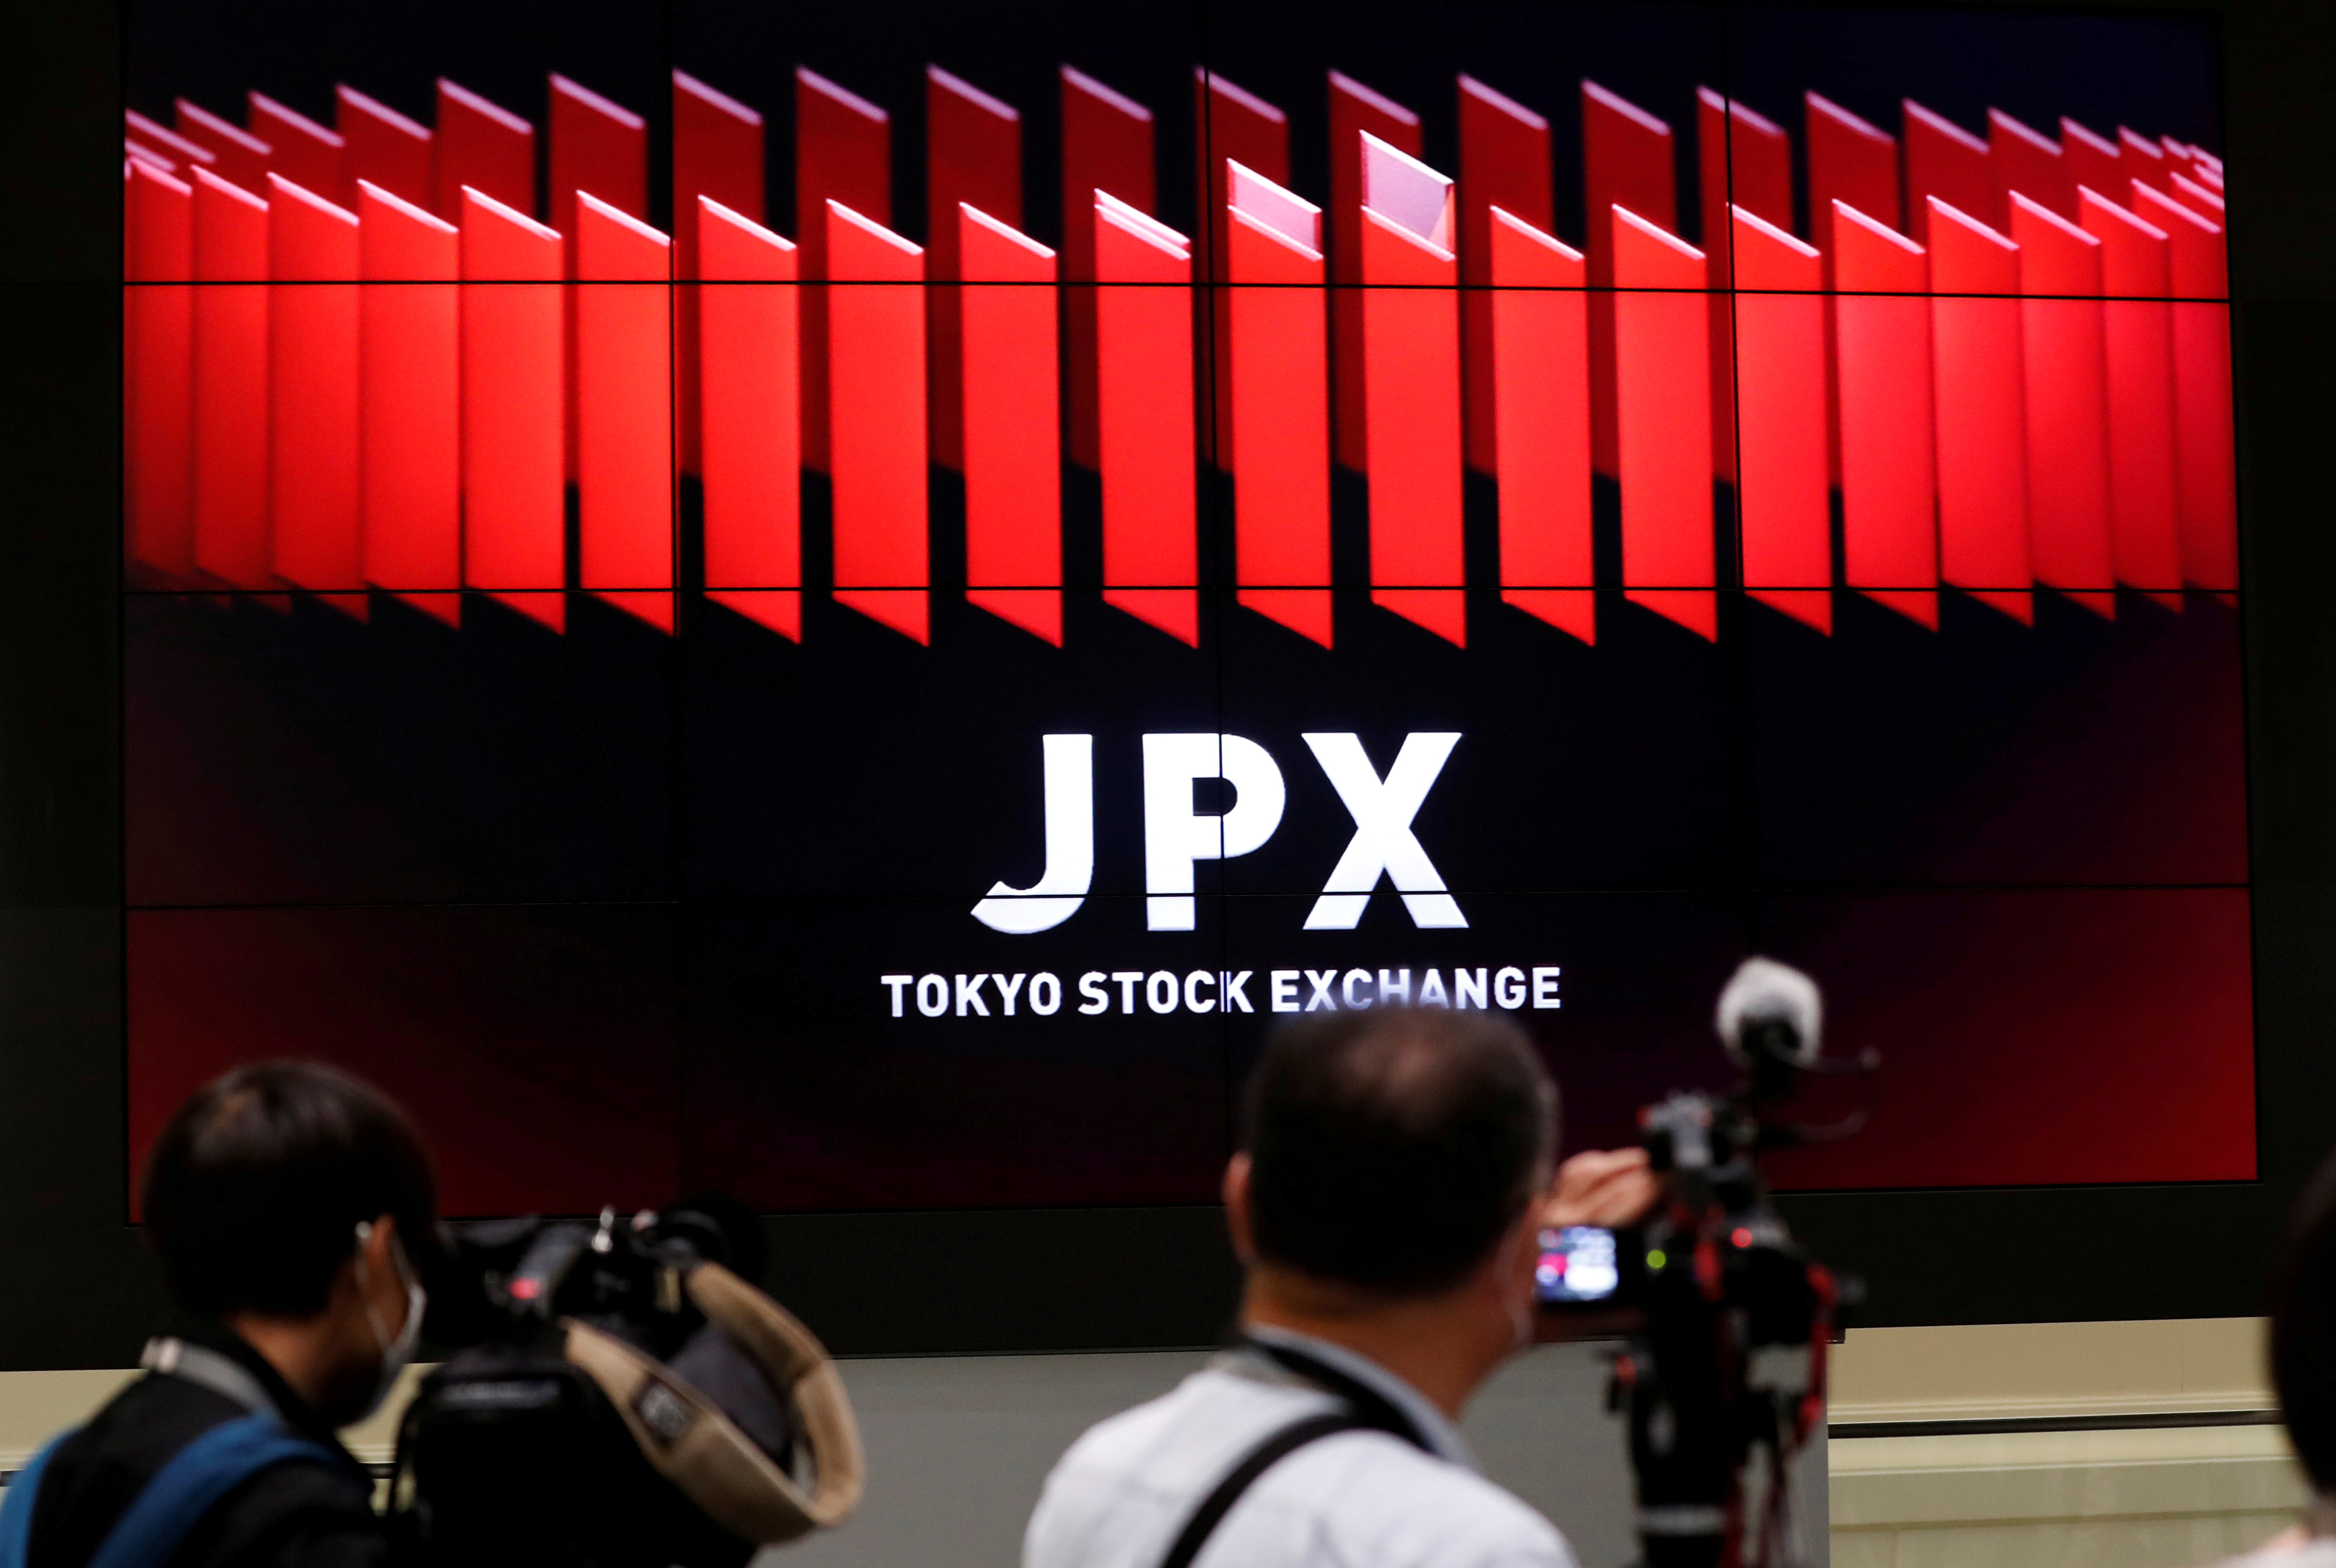 TV camera men wait for the opening of market in front of a large screen showing stock prices at the Tokyo Stock Exchange in Tokyo, Japan October 2, 2020. REUTERS/Kim Kyung-Hoon/File Photo